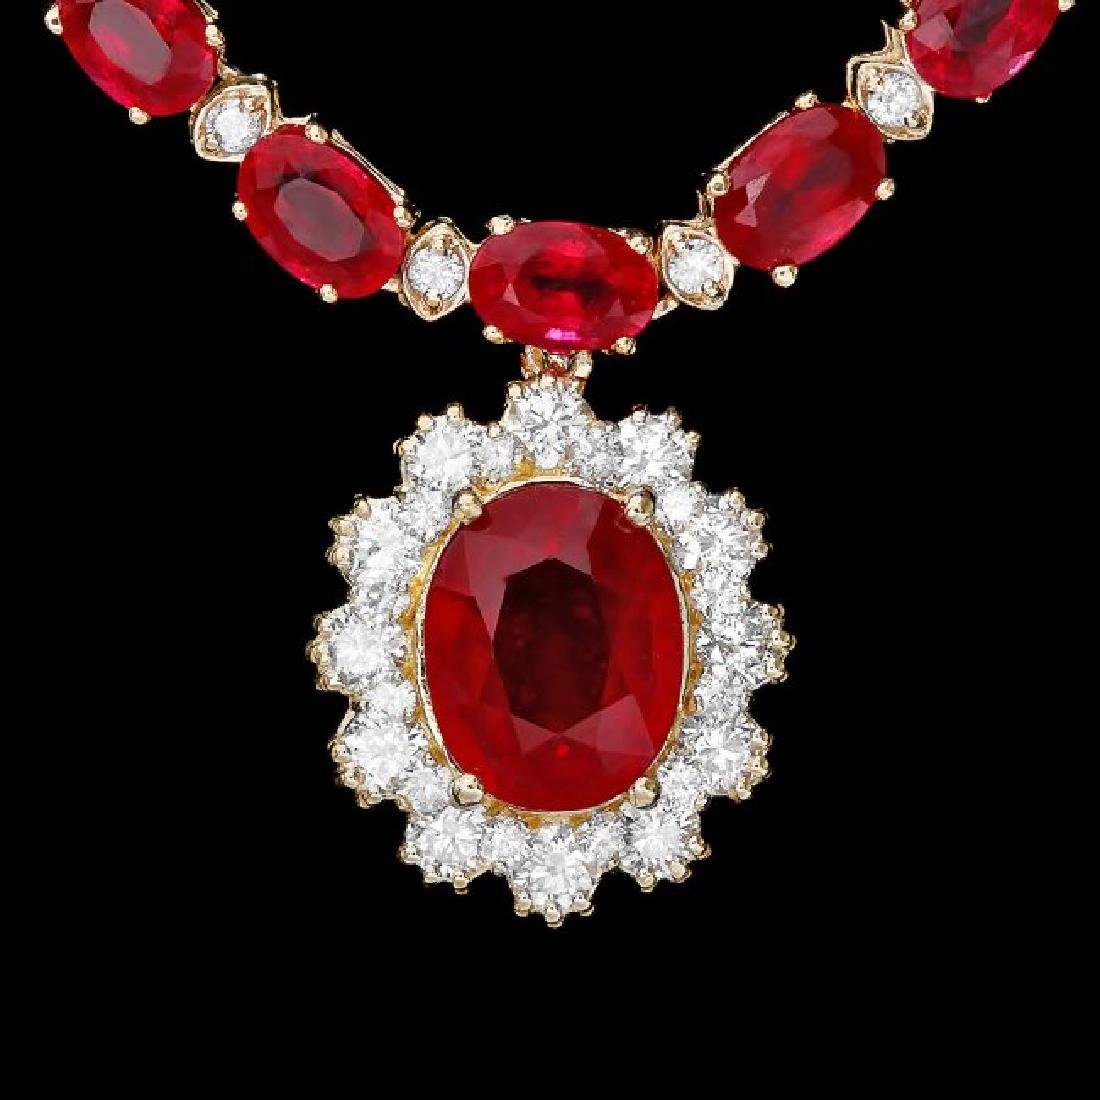 14k Gold 40.5ct Ruby 2.55ct Diamond Necklace - 3